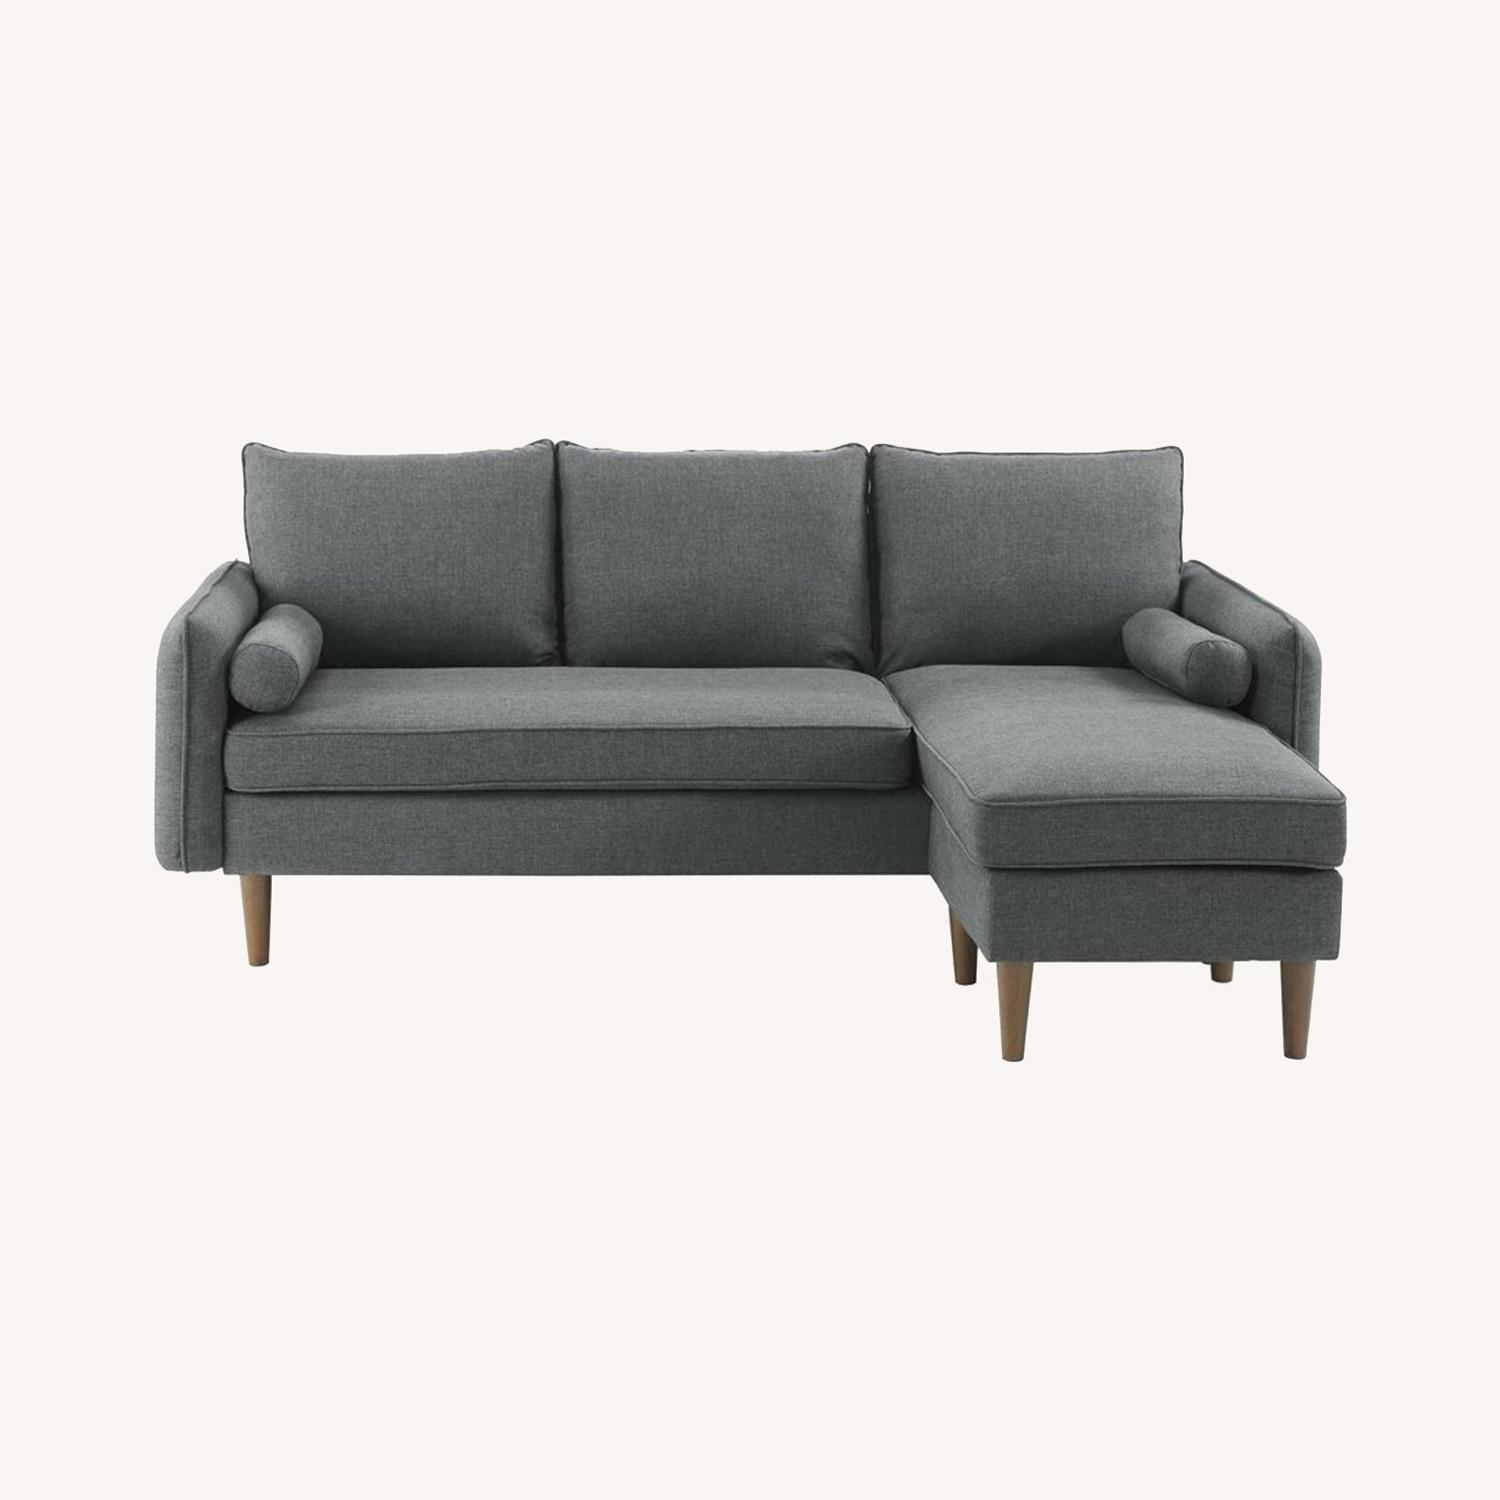 2-Piece Sectional Sofa In Gray Upholstery Finish - image-12